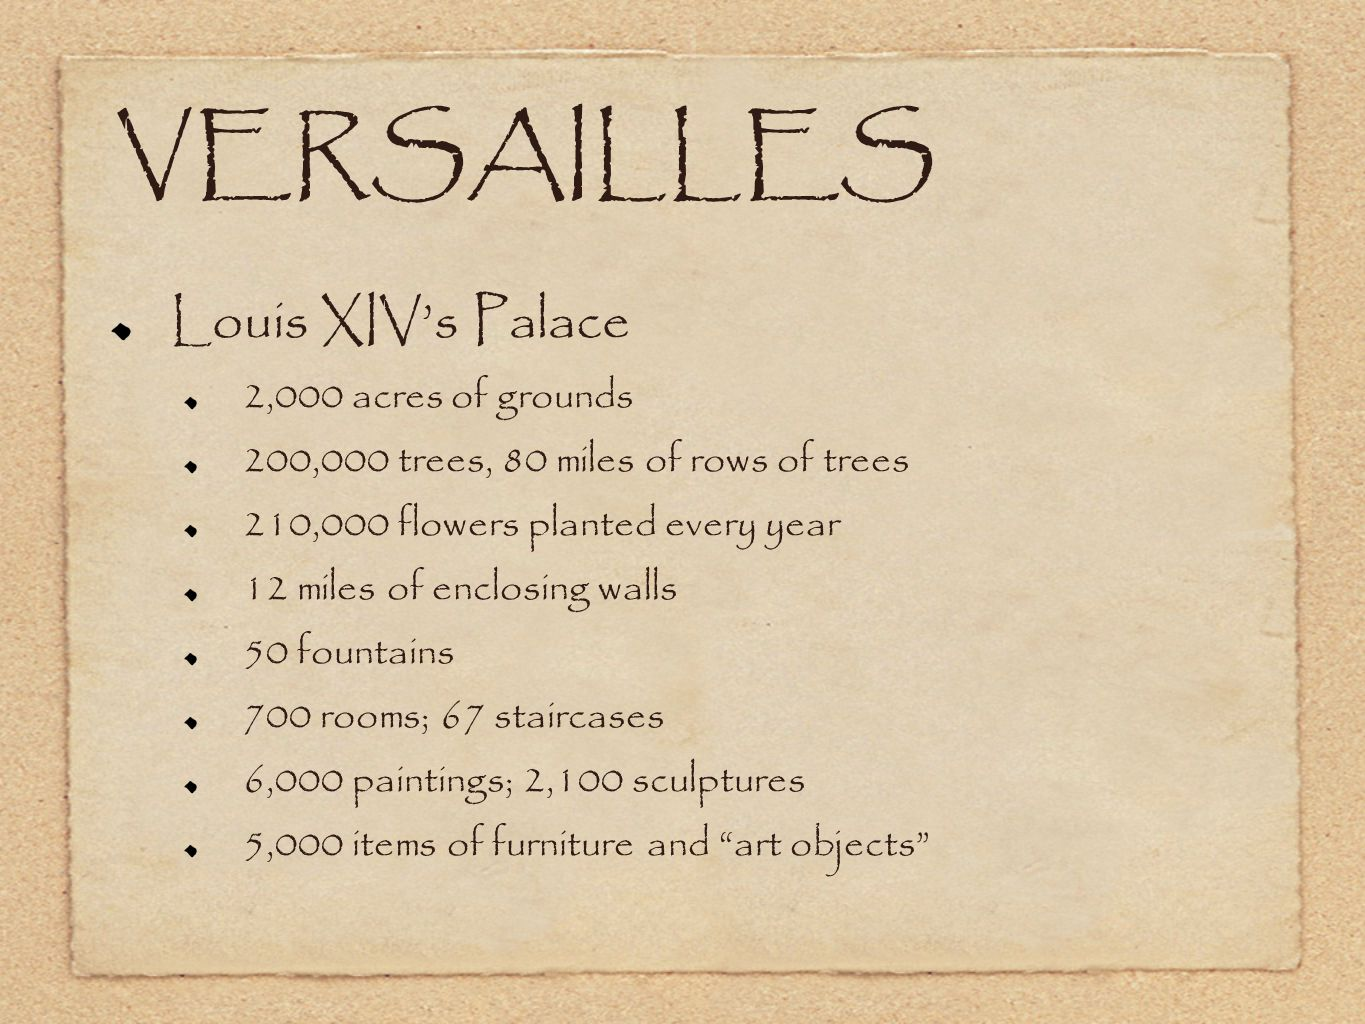 VERSAILLES Louis XIV's Palace 2,000 acres of grounds 200,000 trees, 80 miles of rows of trees 210,000 flowers planted every year 12 miles of enclosing walls 50 fountains 700 rooms; 67 staircases 6,000 paintings; 2,100 sculptures 5,000 items of furniture and art objects